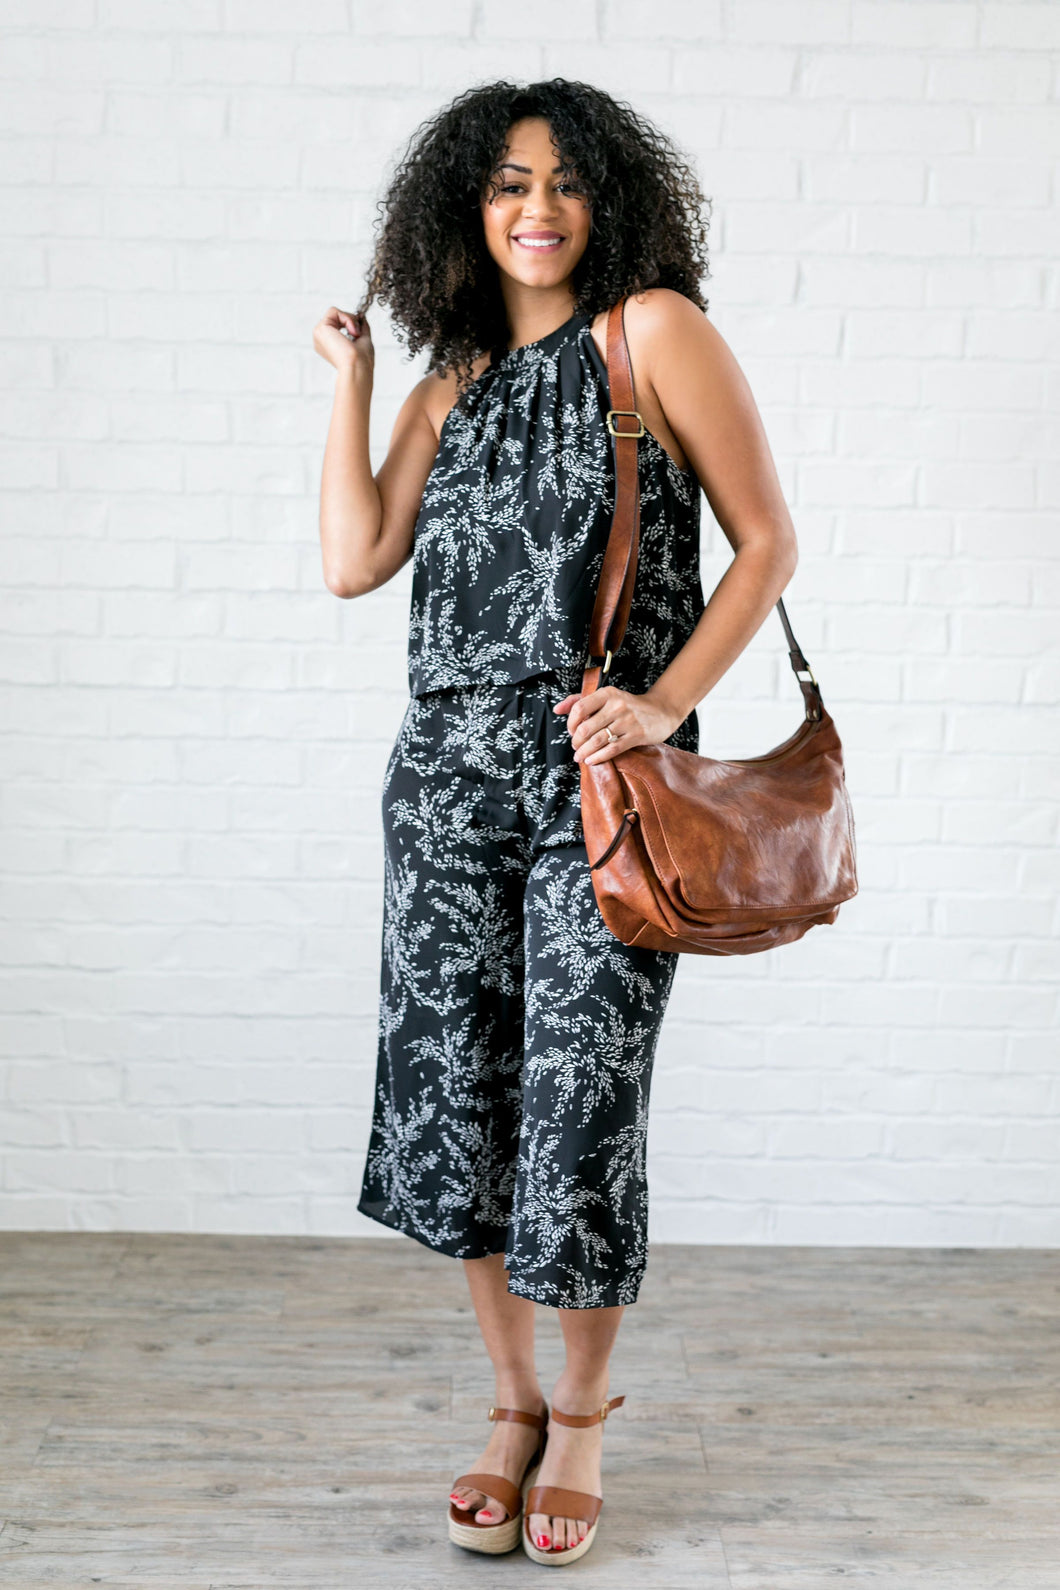 Floral Spray Black + White Jumpsuit - ALL SALES FINAL